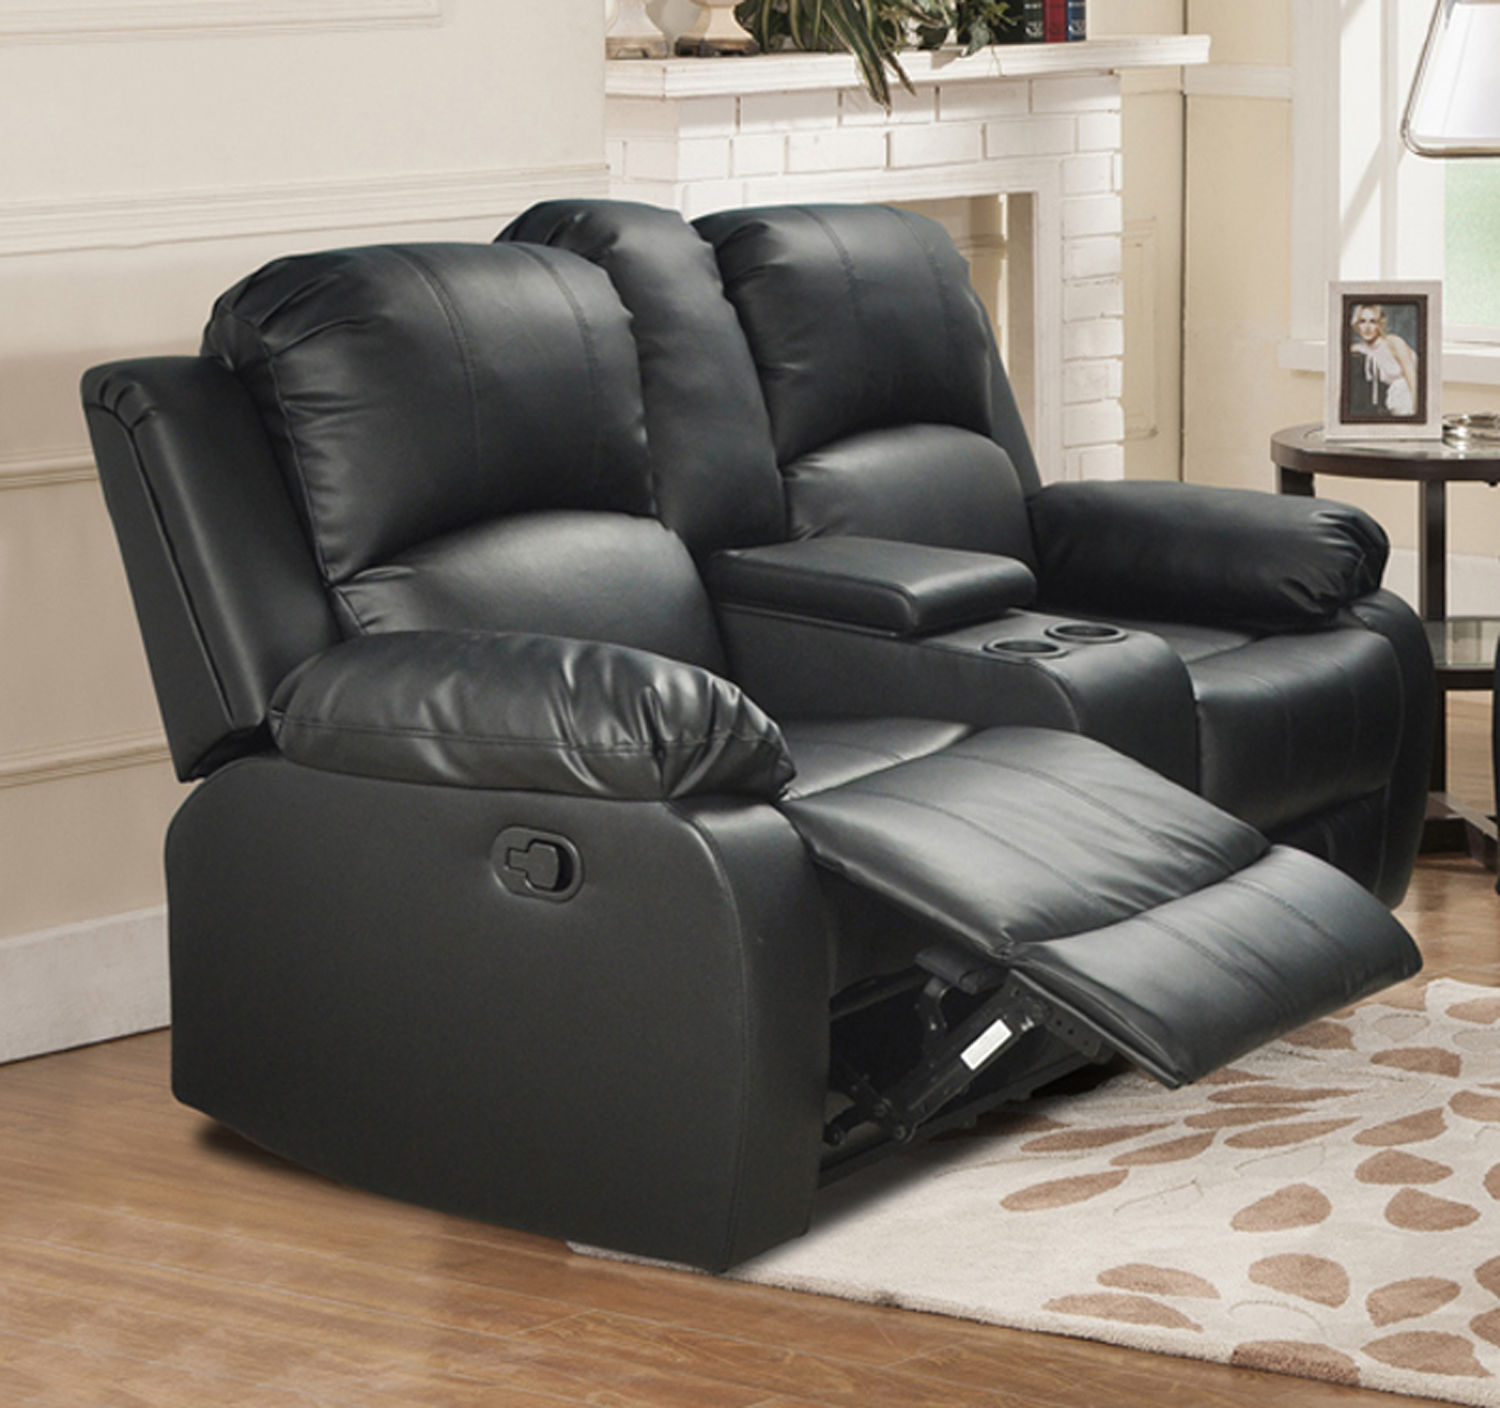 Beverly Furniture RECLINER Bonded Leather Black 2pcs